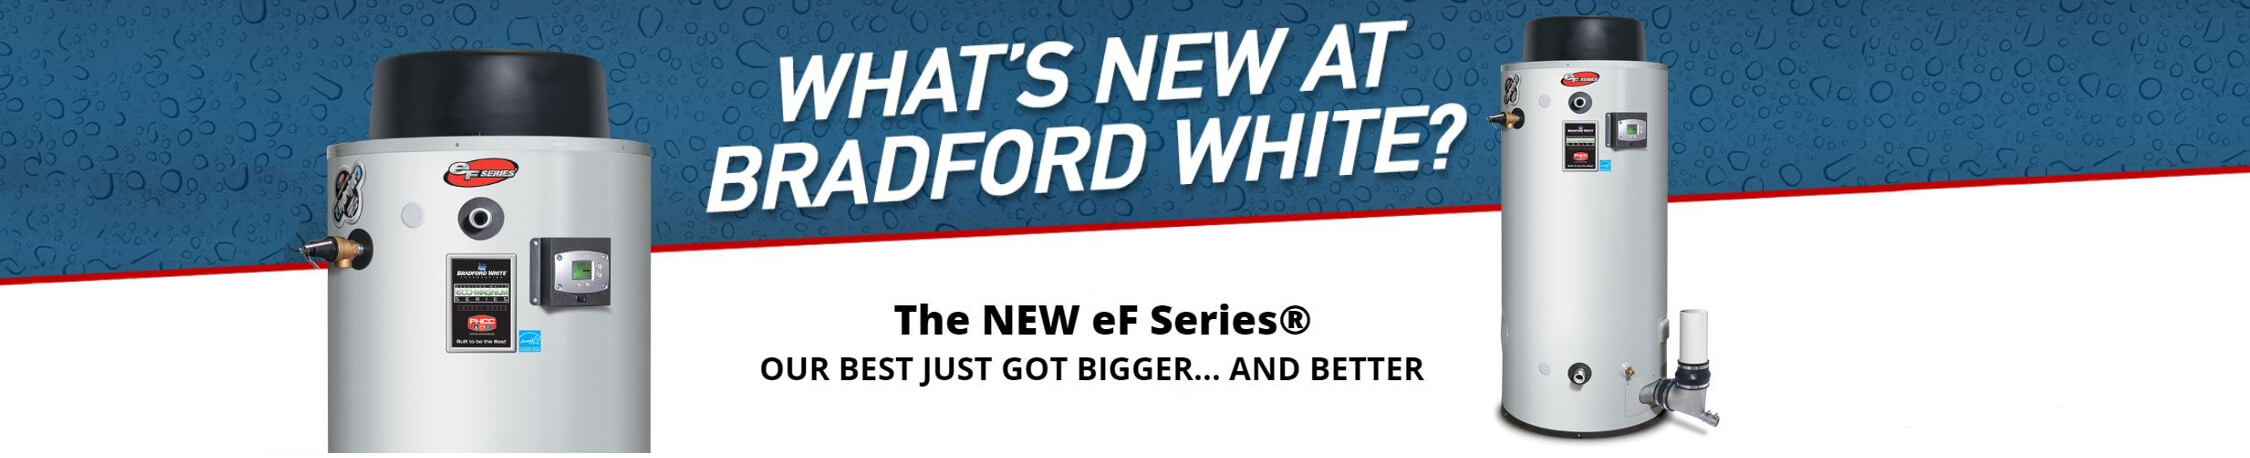 Bradford White EF120 website banner